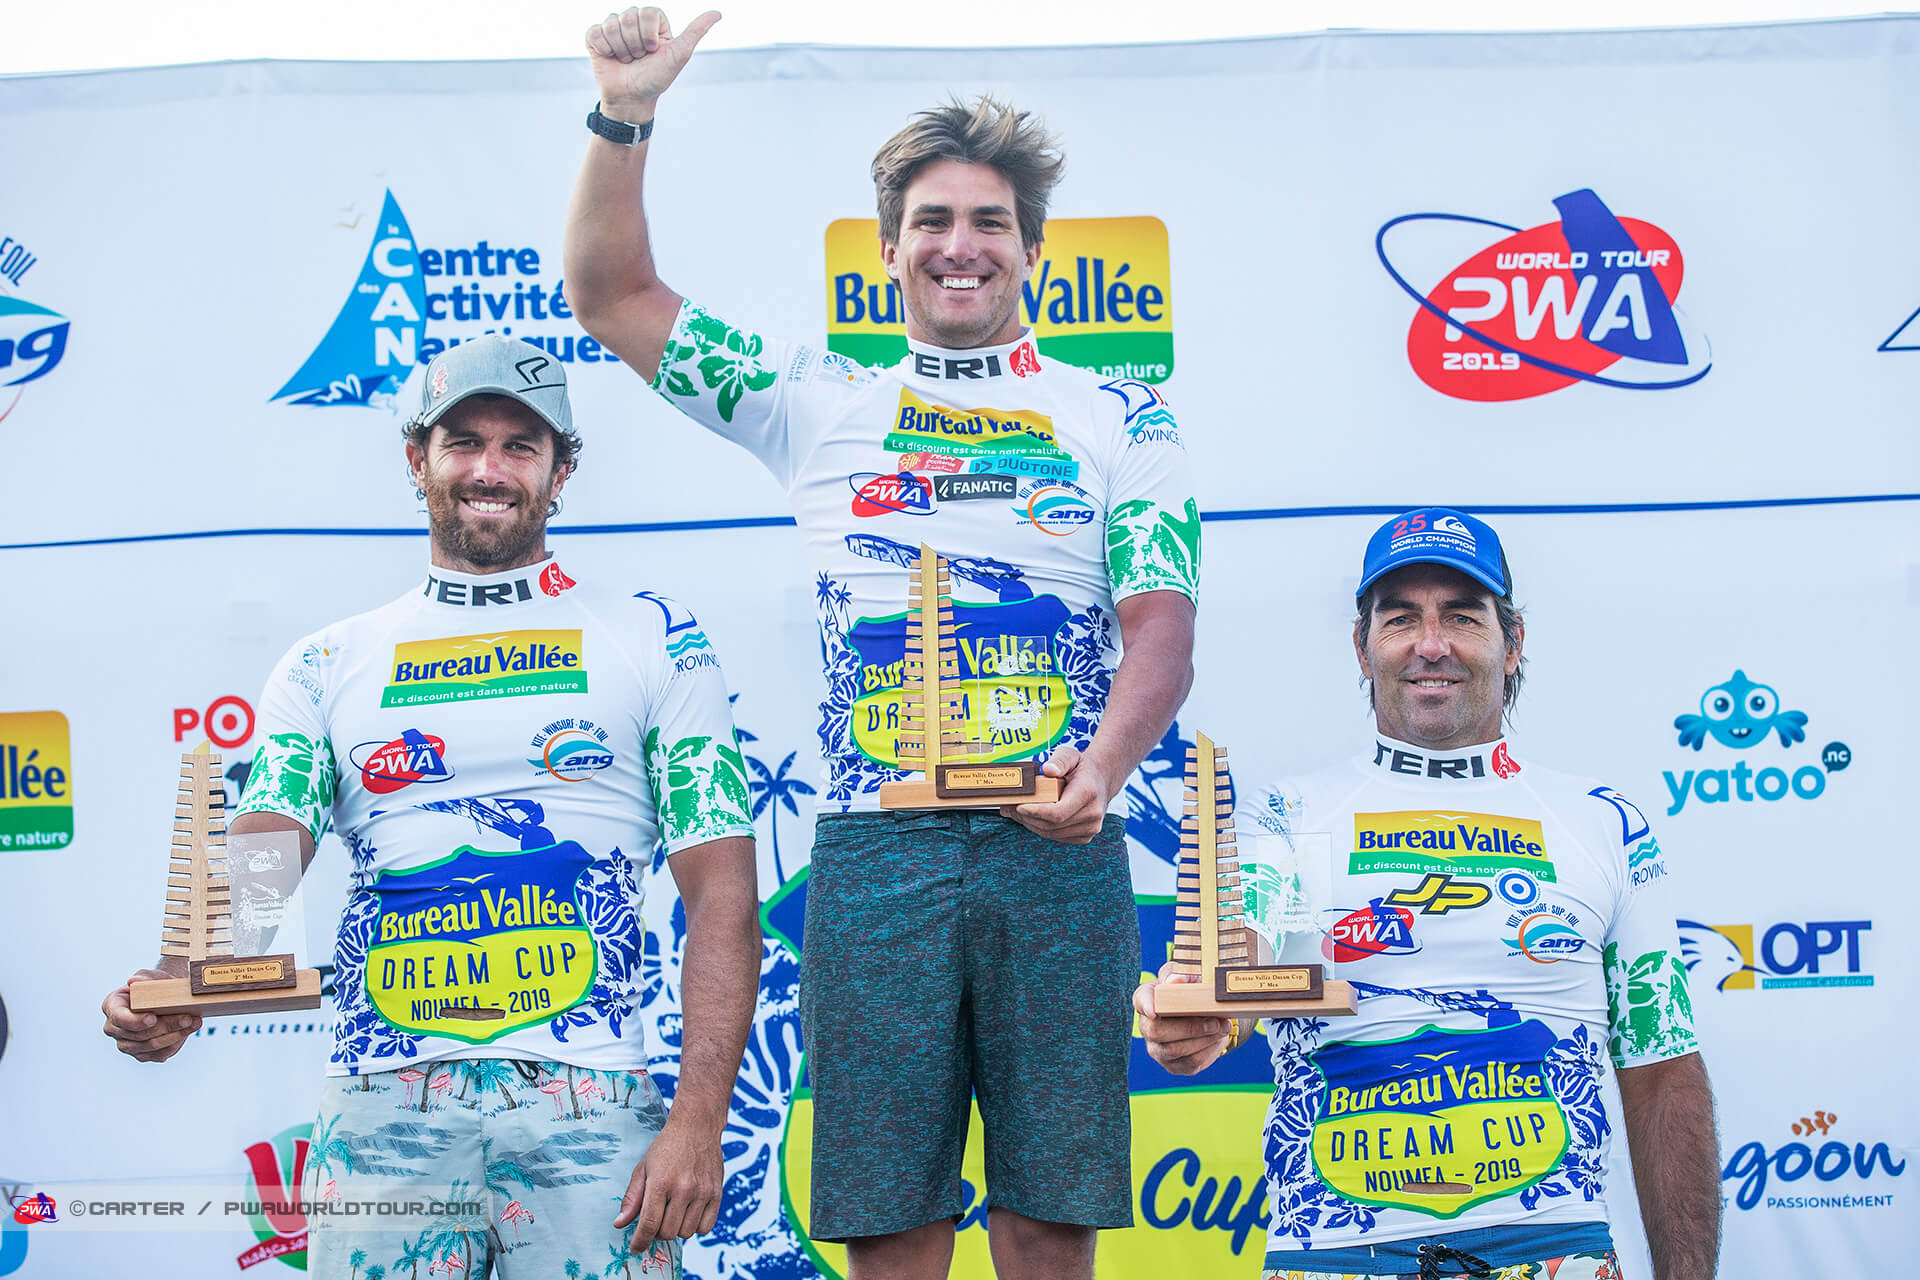 NC19 ls PWA Noumea top three men